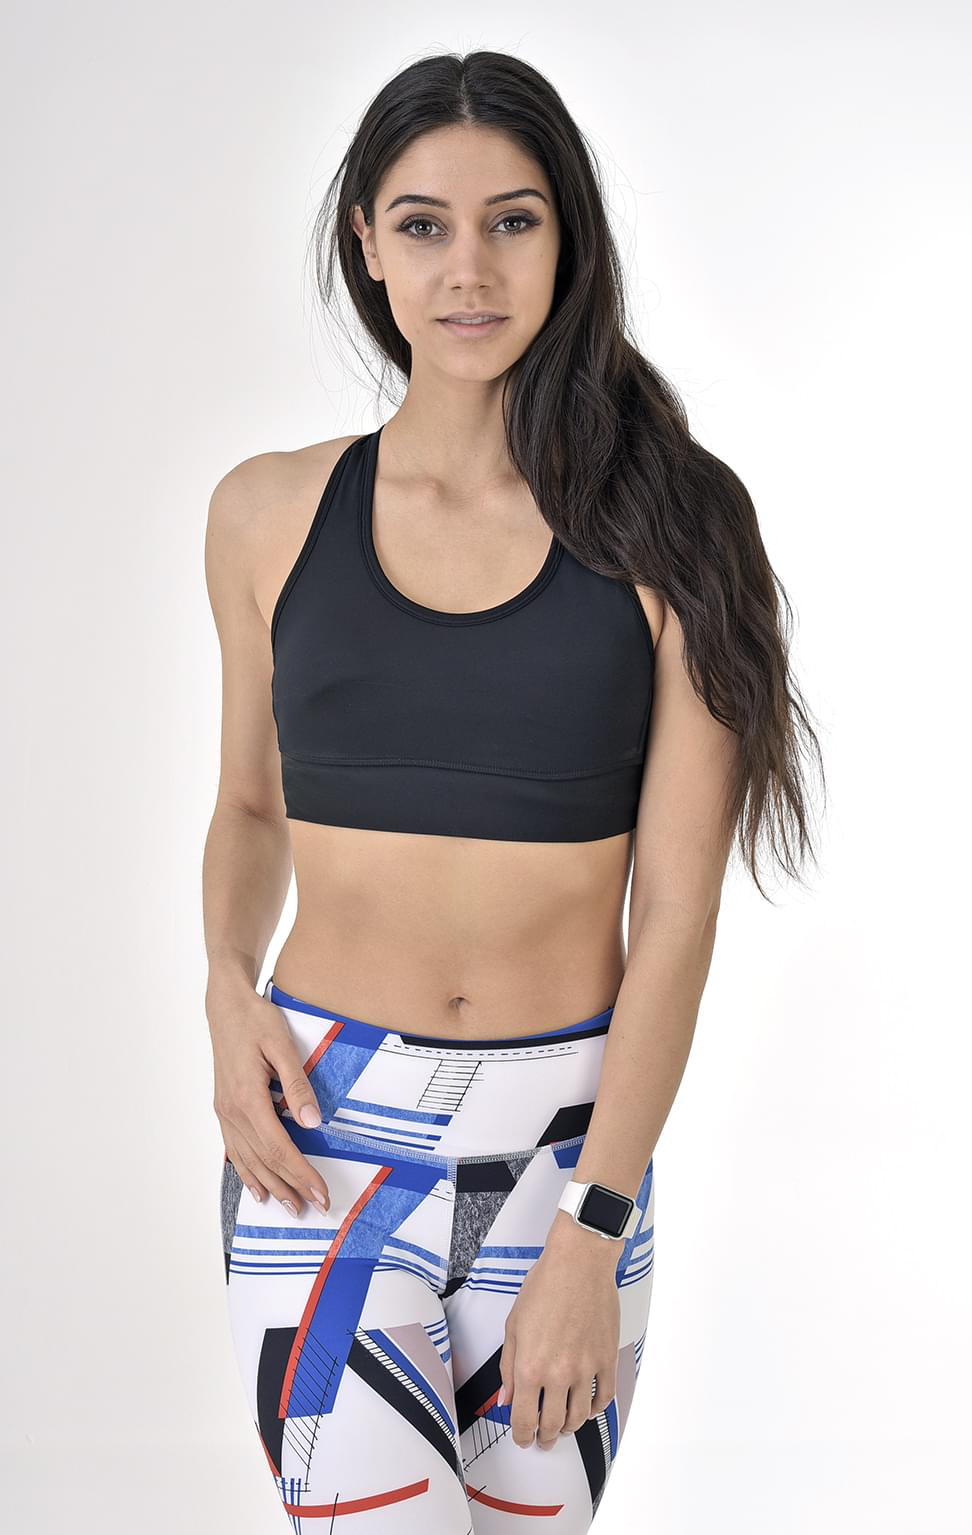 REEBOK RE TOUGH BRA D78704 Női sportmelltartó